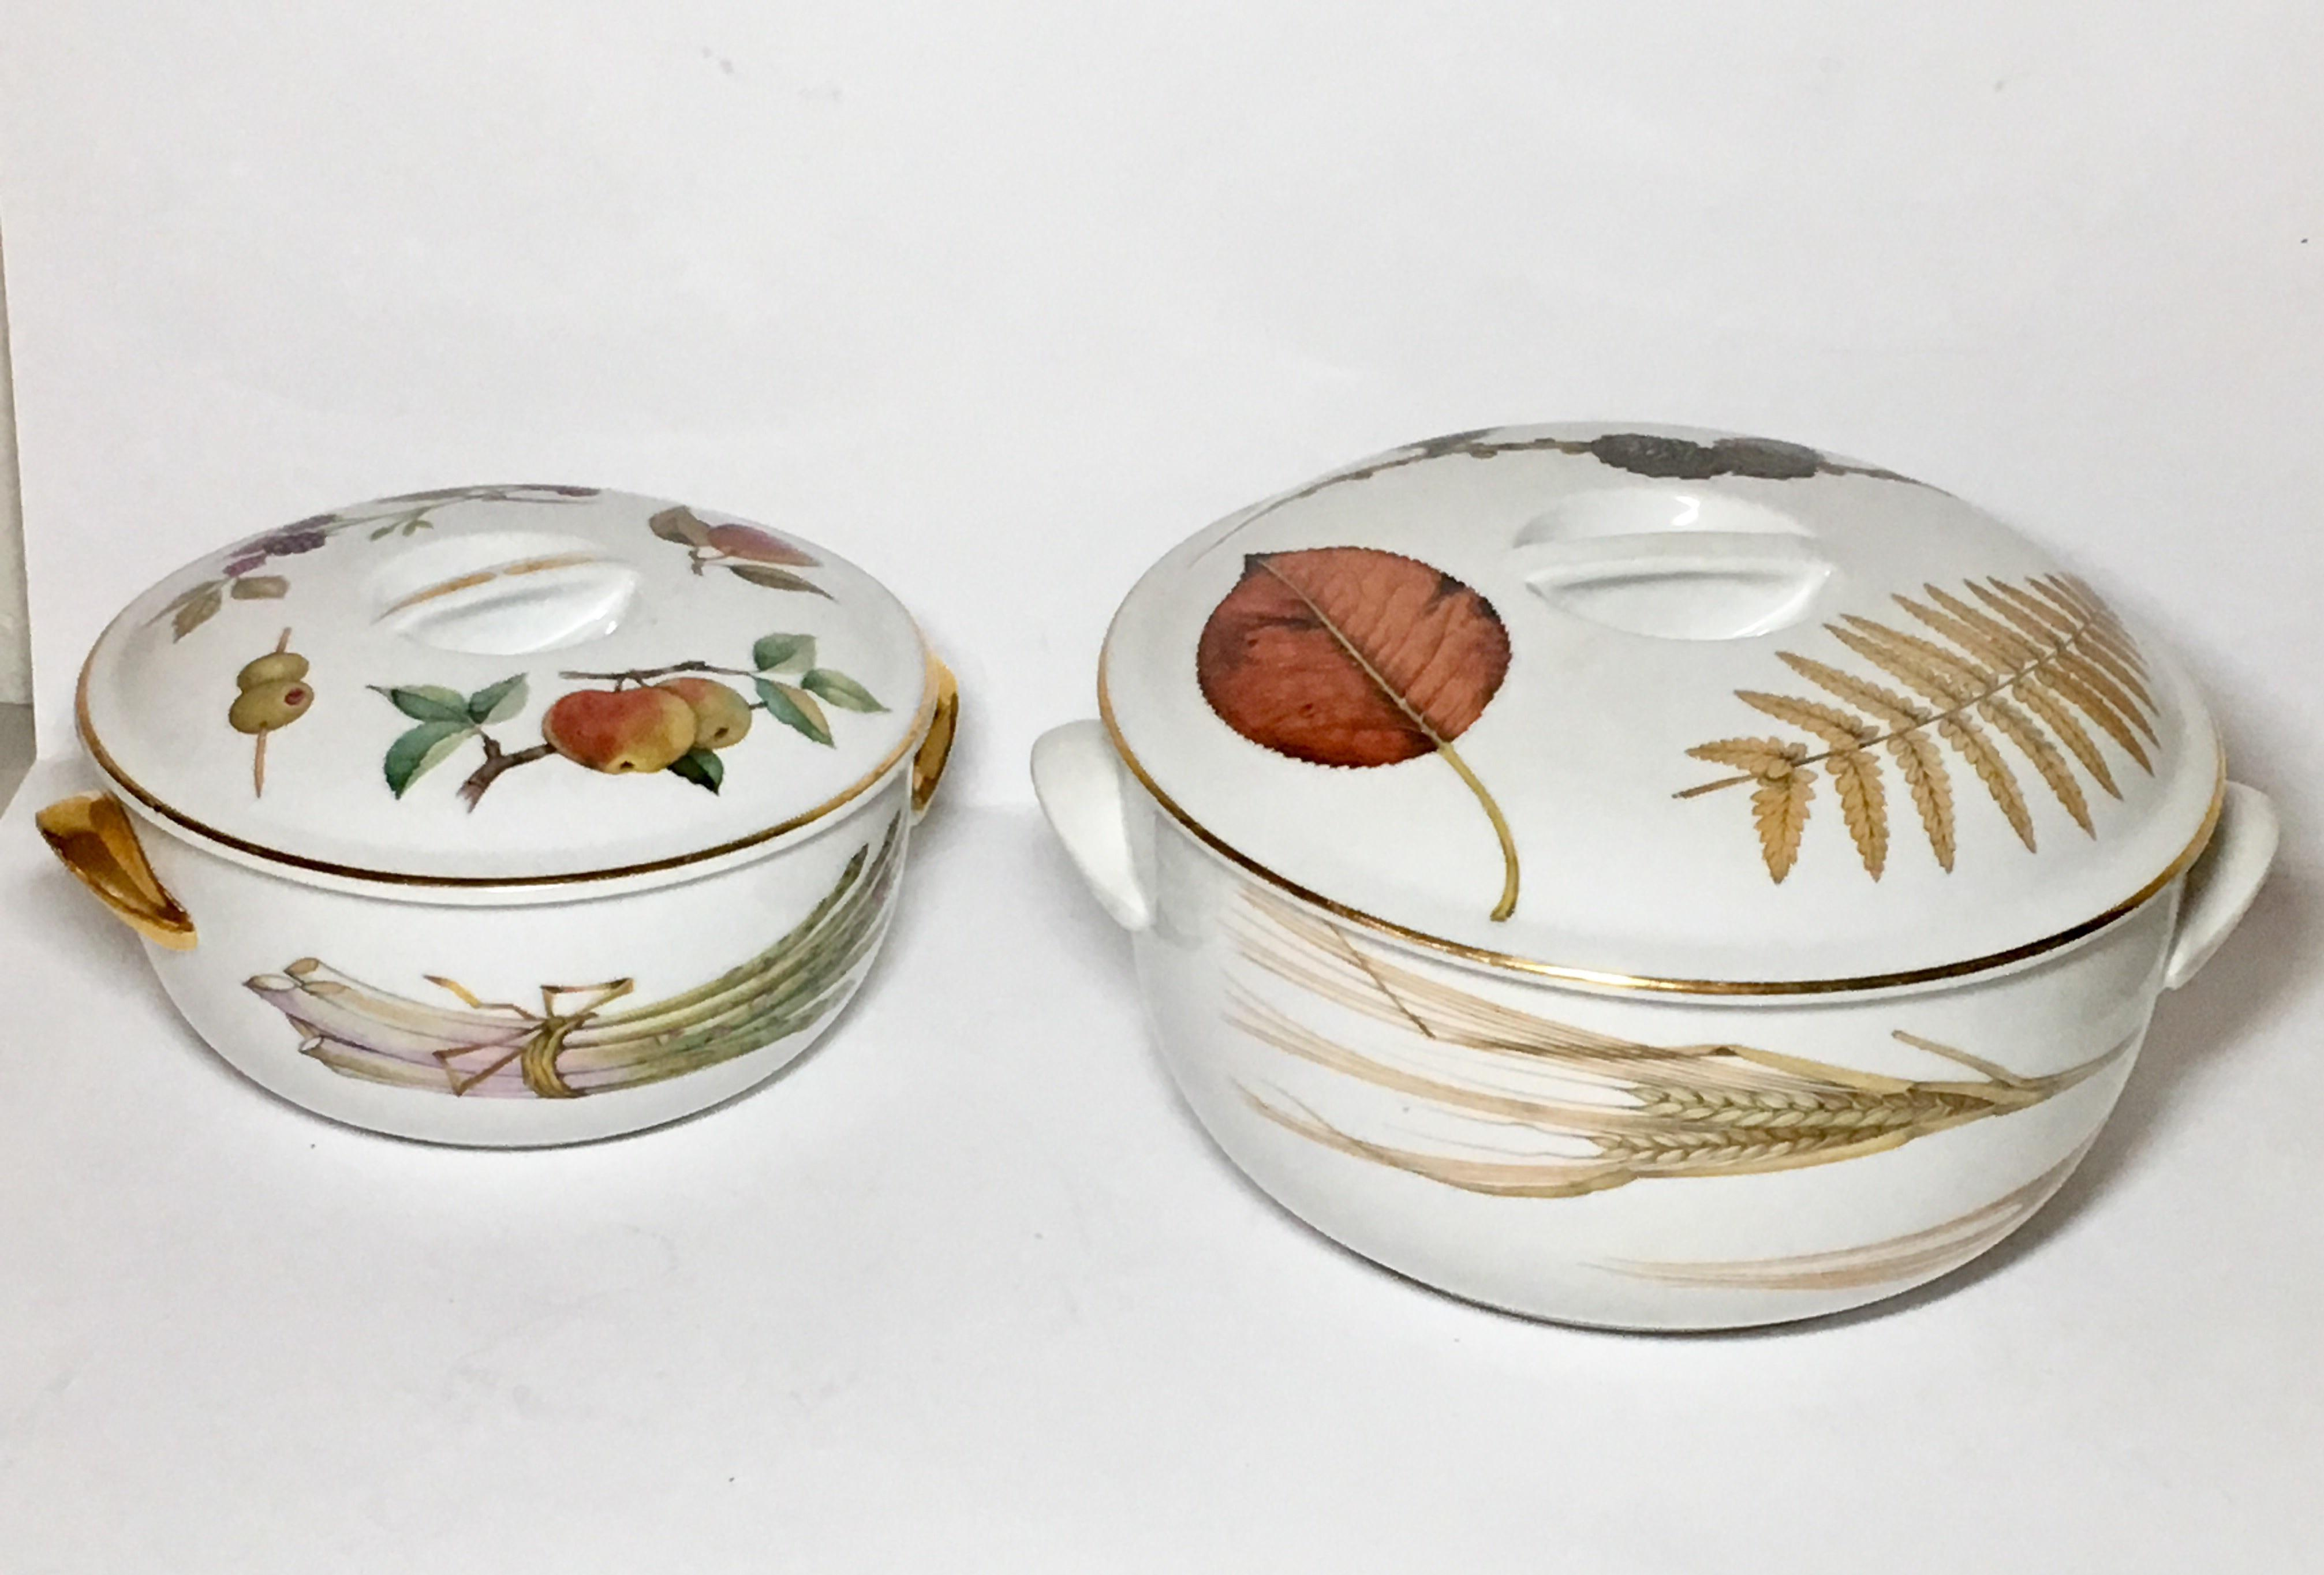 These Are Oven To Table Vegetable Casseroles With Lids. One Has Gold  Trimmed Handles,